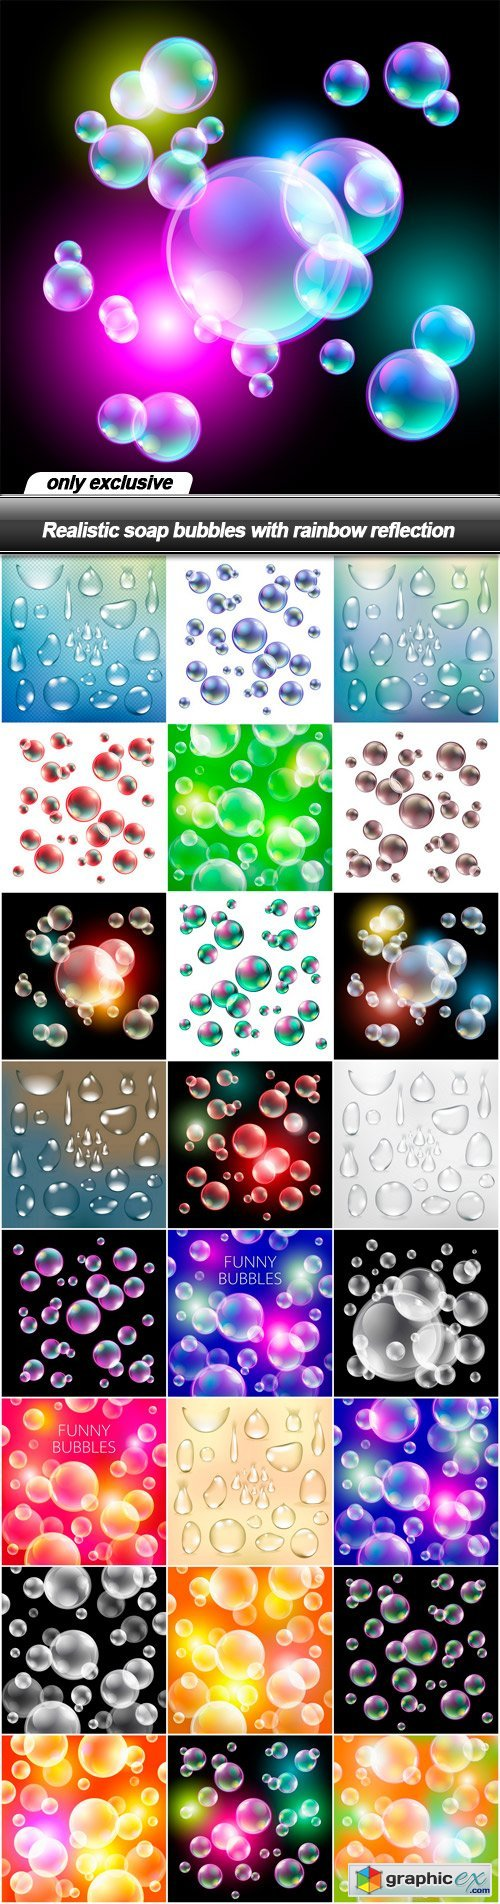 Realistic soap bubbles with rainbow reflection - 25 EPS